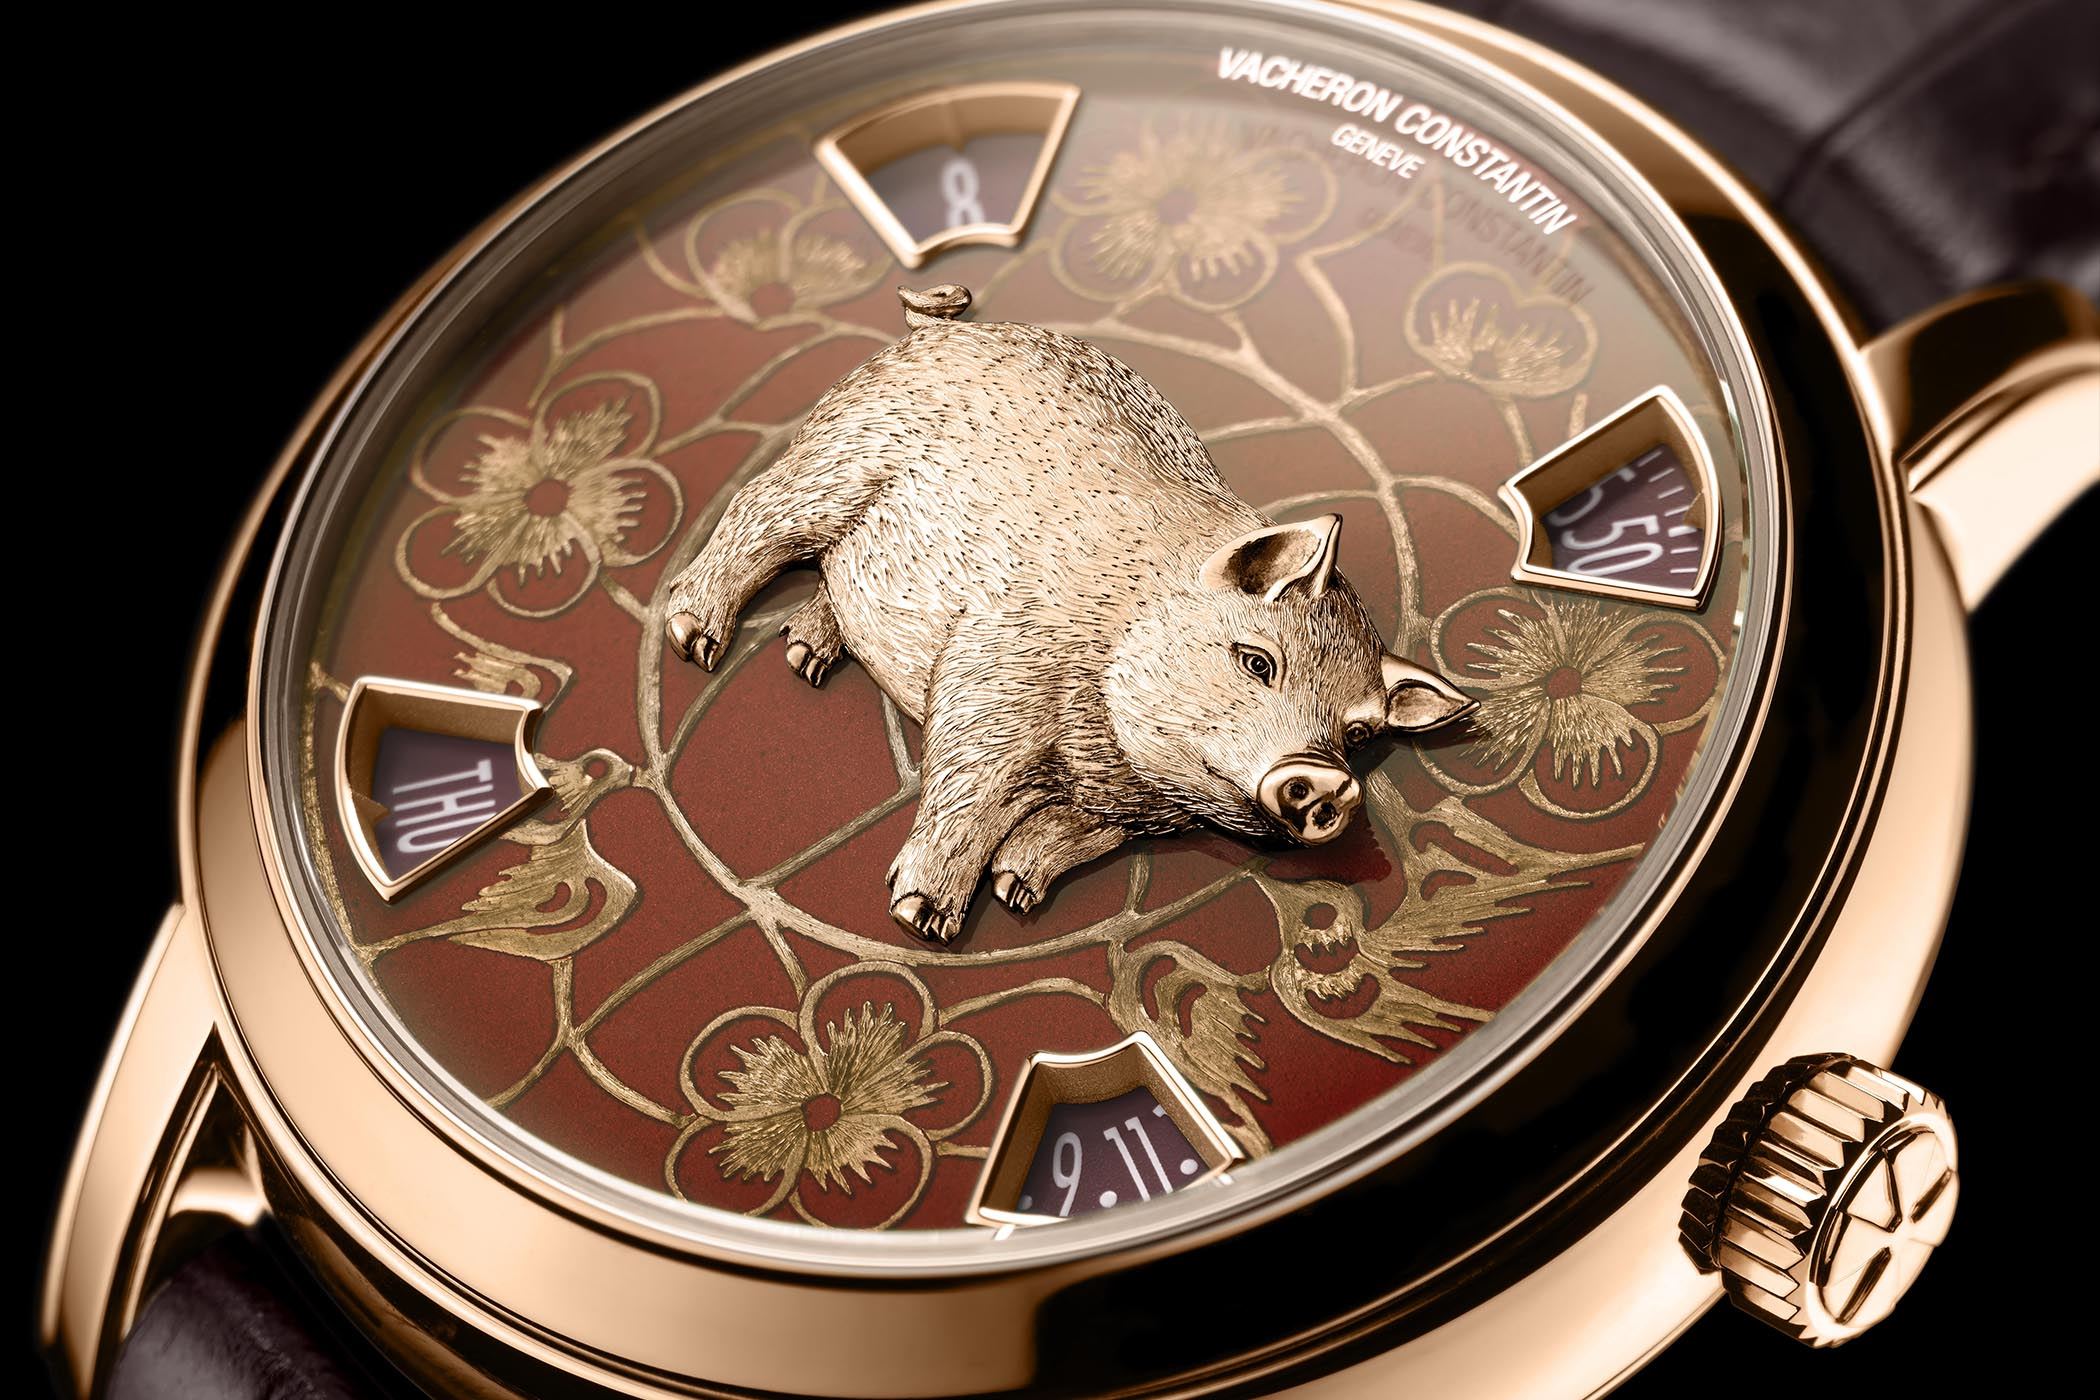 Vacheron Constantin Metiers Dart The Legend Of The Chinese Zodiac Year Of The Pig - 2